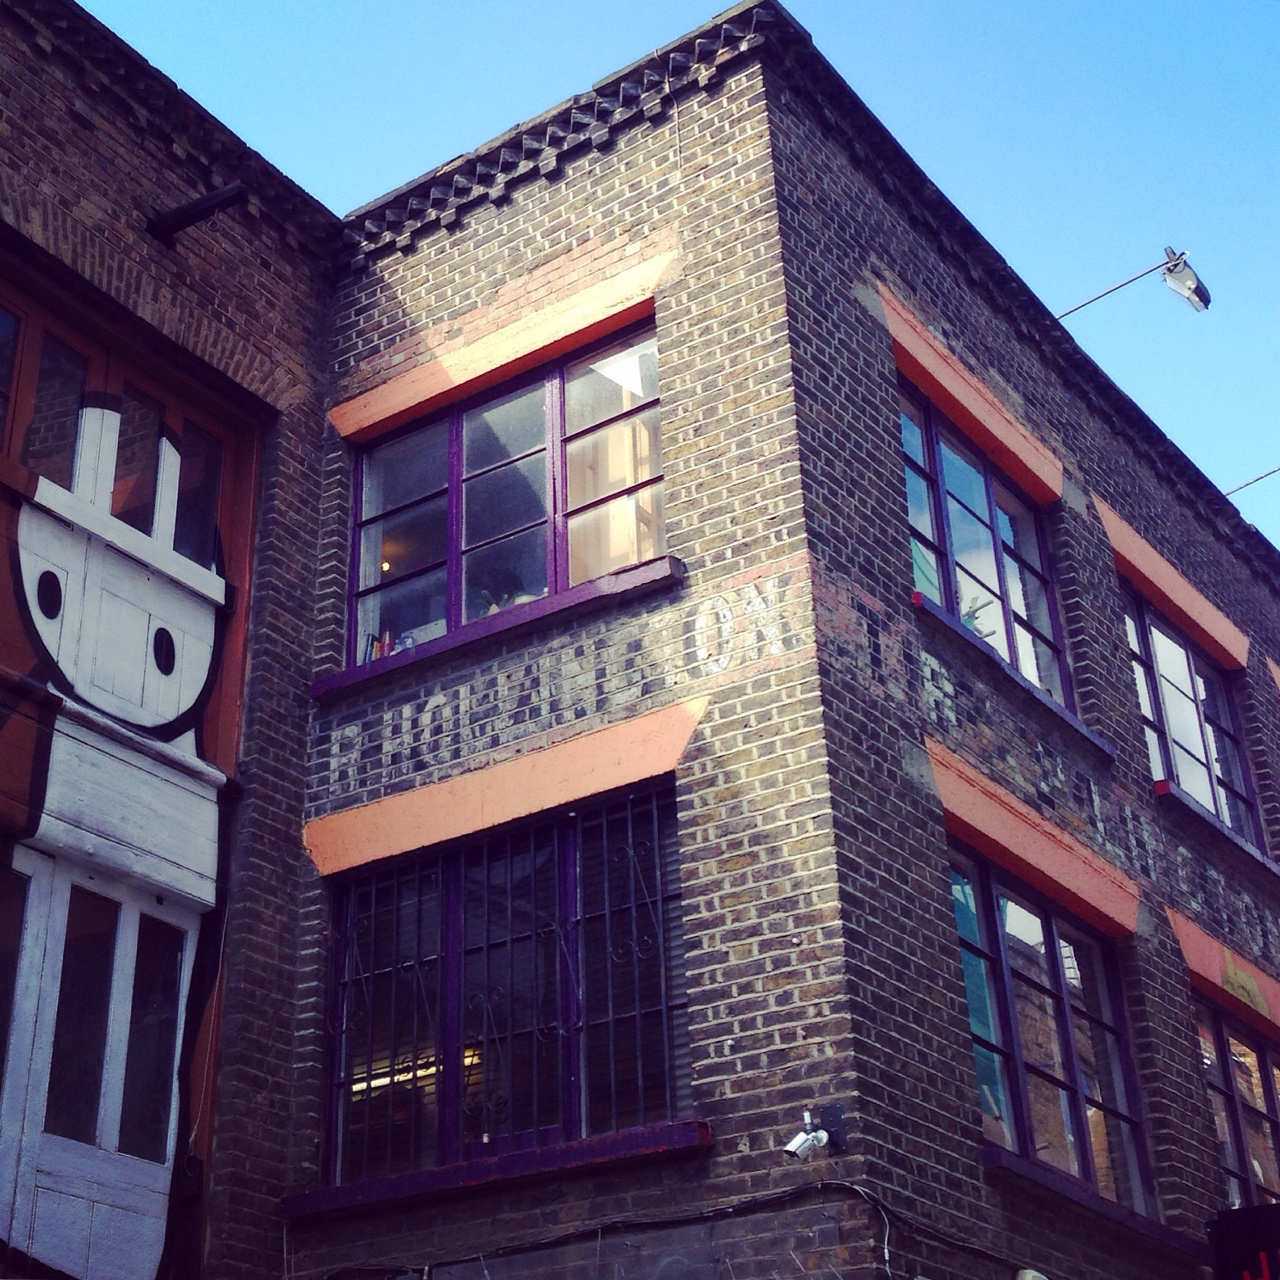 GHOST SIGN OF FURNITURE MANUFACTURER, r HOLLINGTON, STILL VISIBLE ABOVE THE COMEDY CLUB:http://urbantypo.tumblr.com/